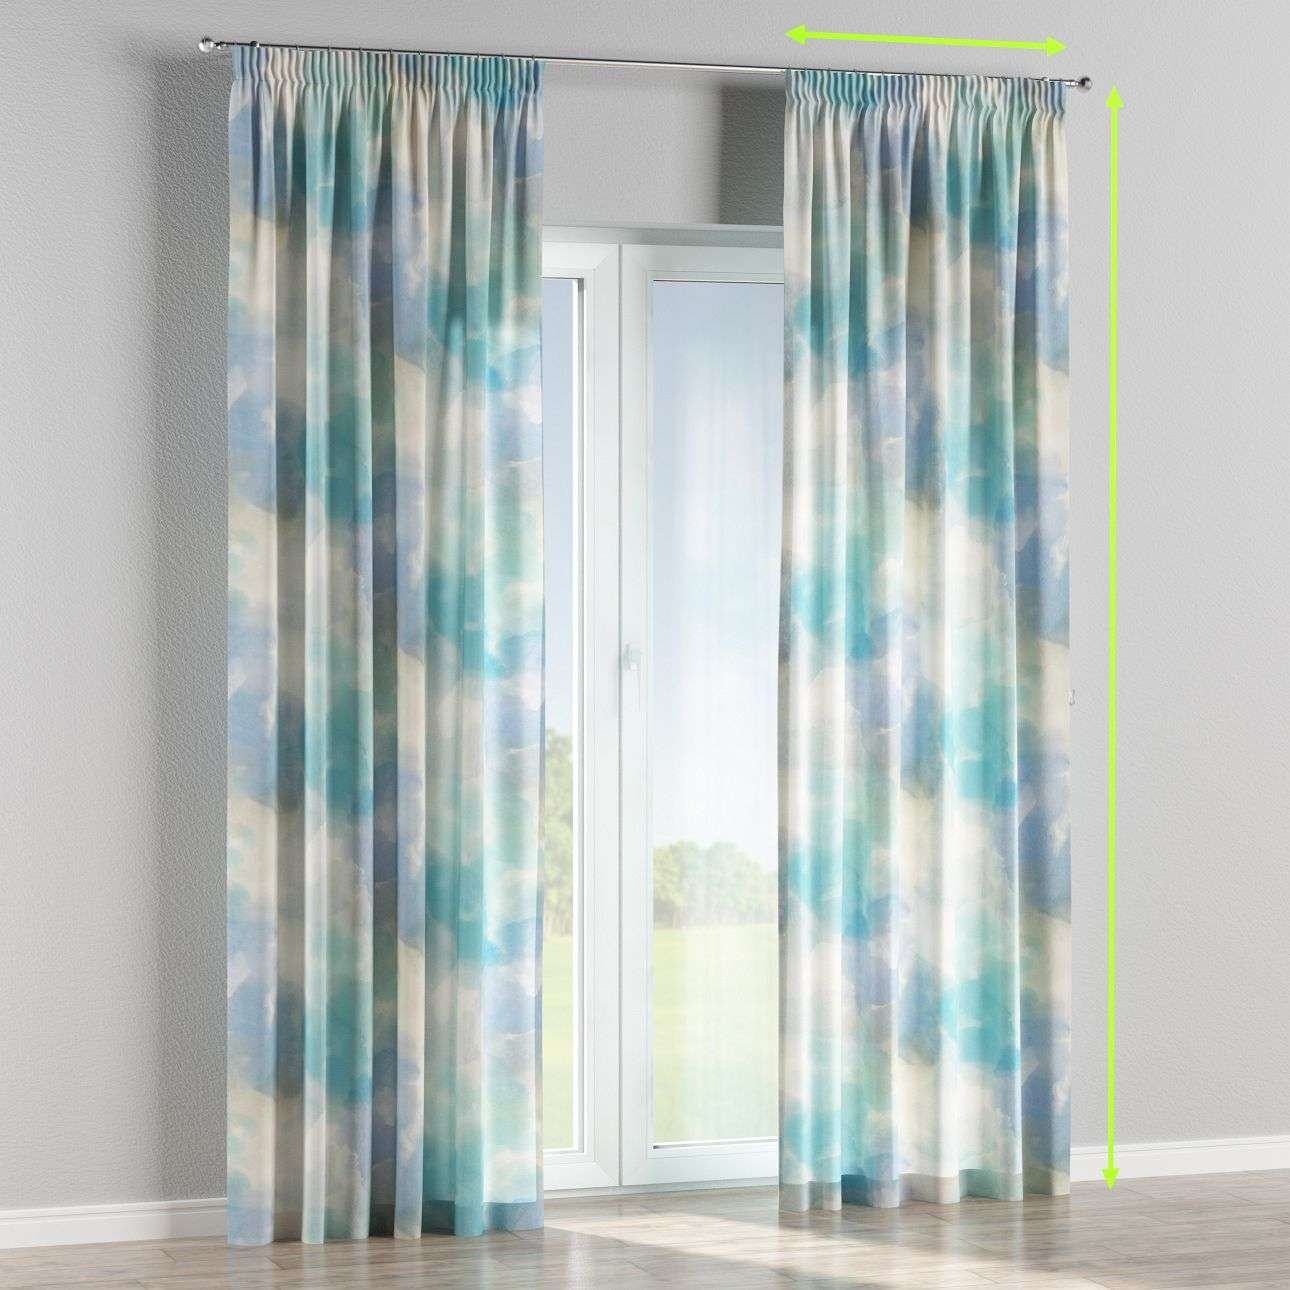 Pencil pleat curtains in collection Aquarelle, fabric: 140-67